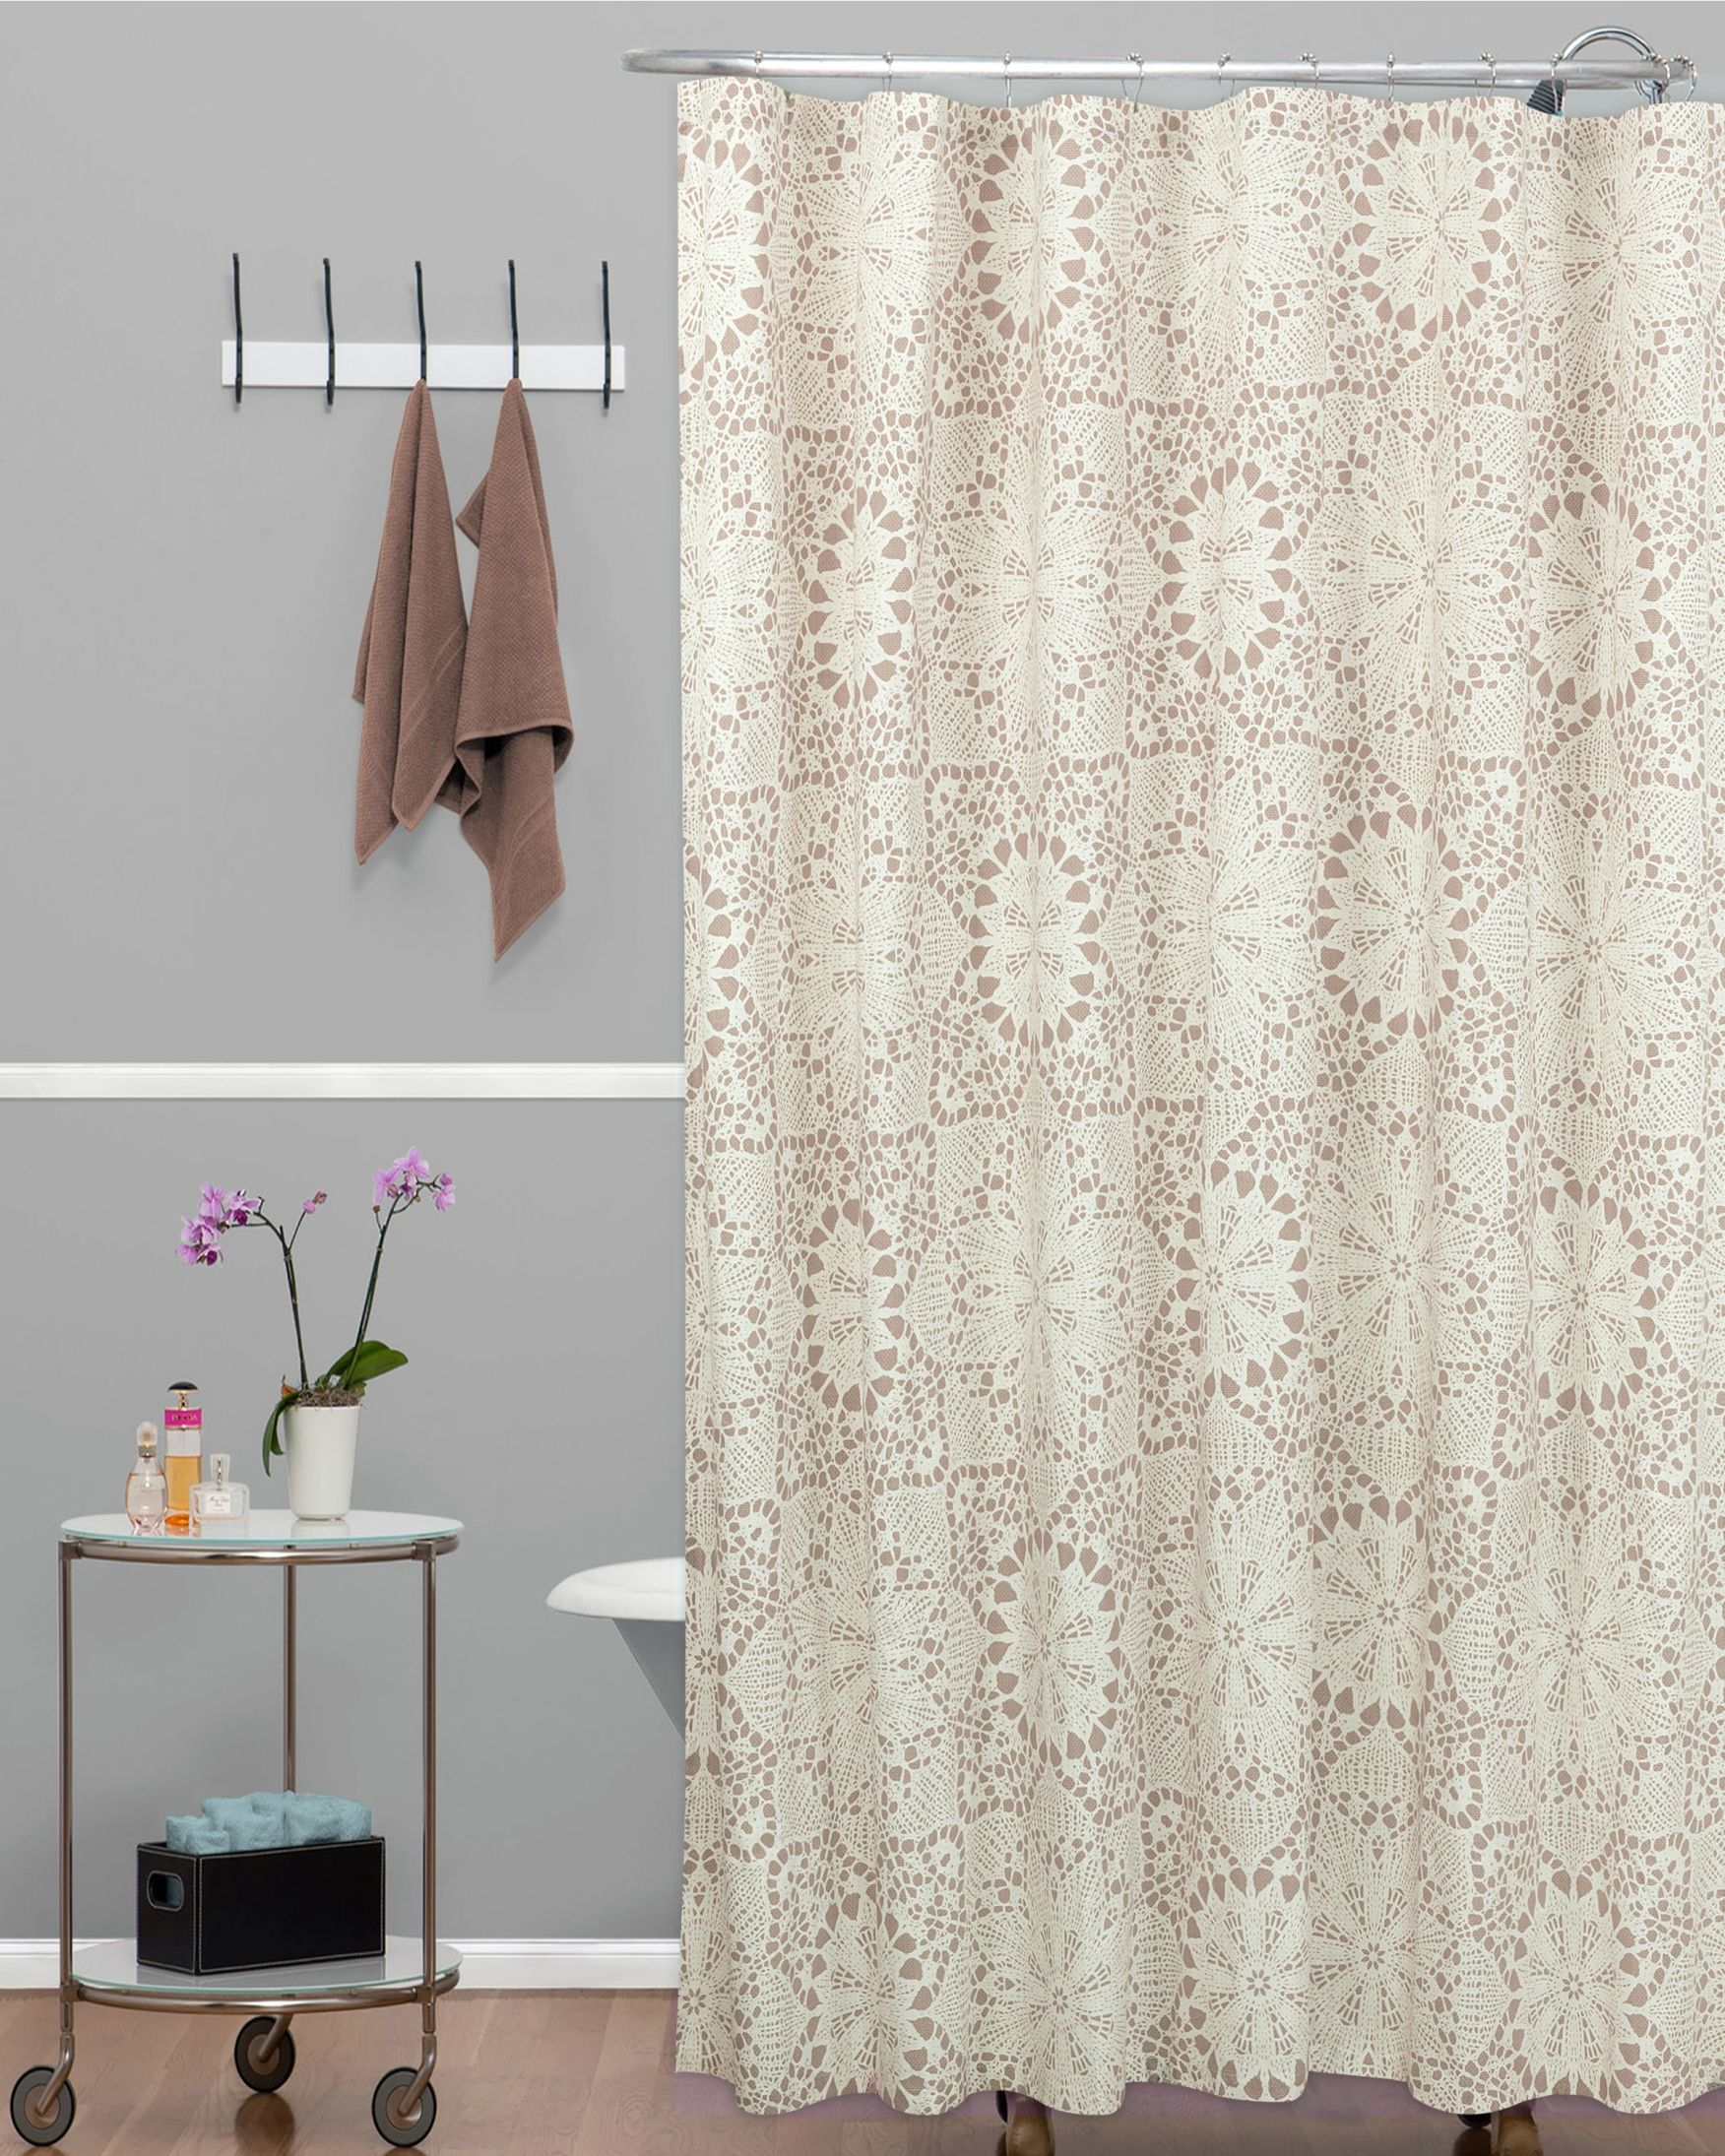 Pin By Laurel Combs Rogers On Bathroom Ideas Shower Curtain